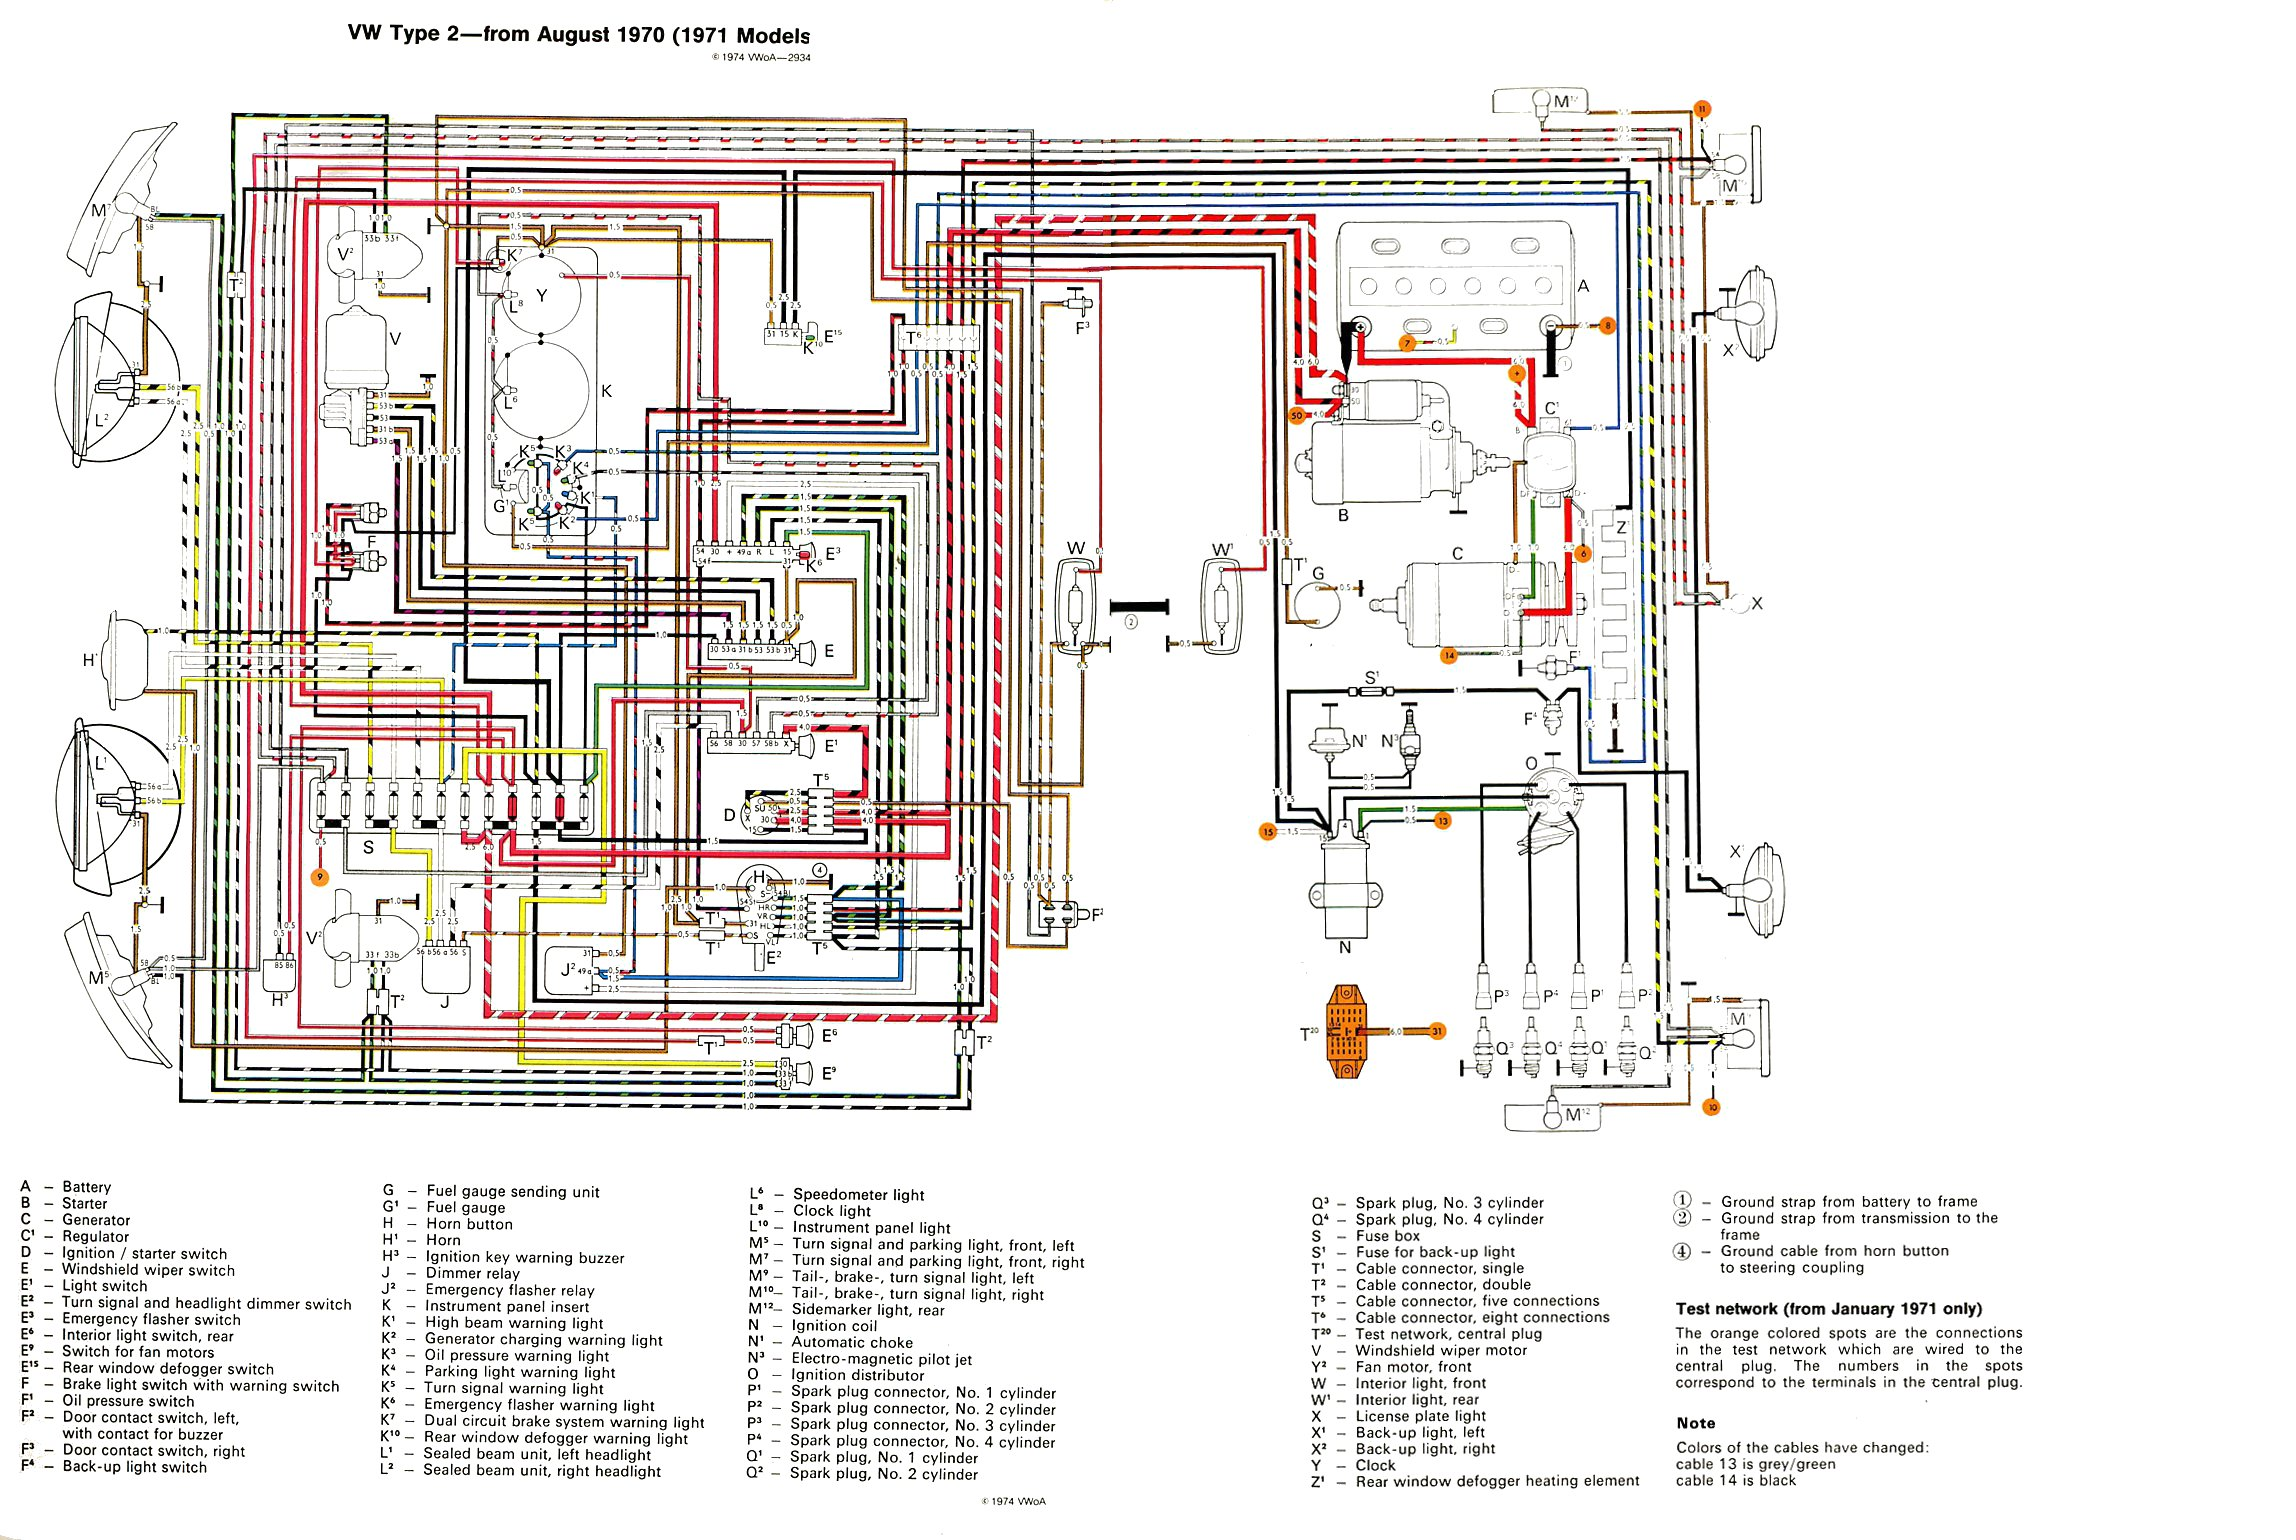 76 vw bus wiring diagram layout wiring diagrams u2022 rh laurafinlay co uk 79 Corvette Wiring Diagram 79 Corvette Wiring Diagram